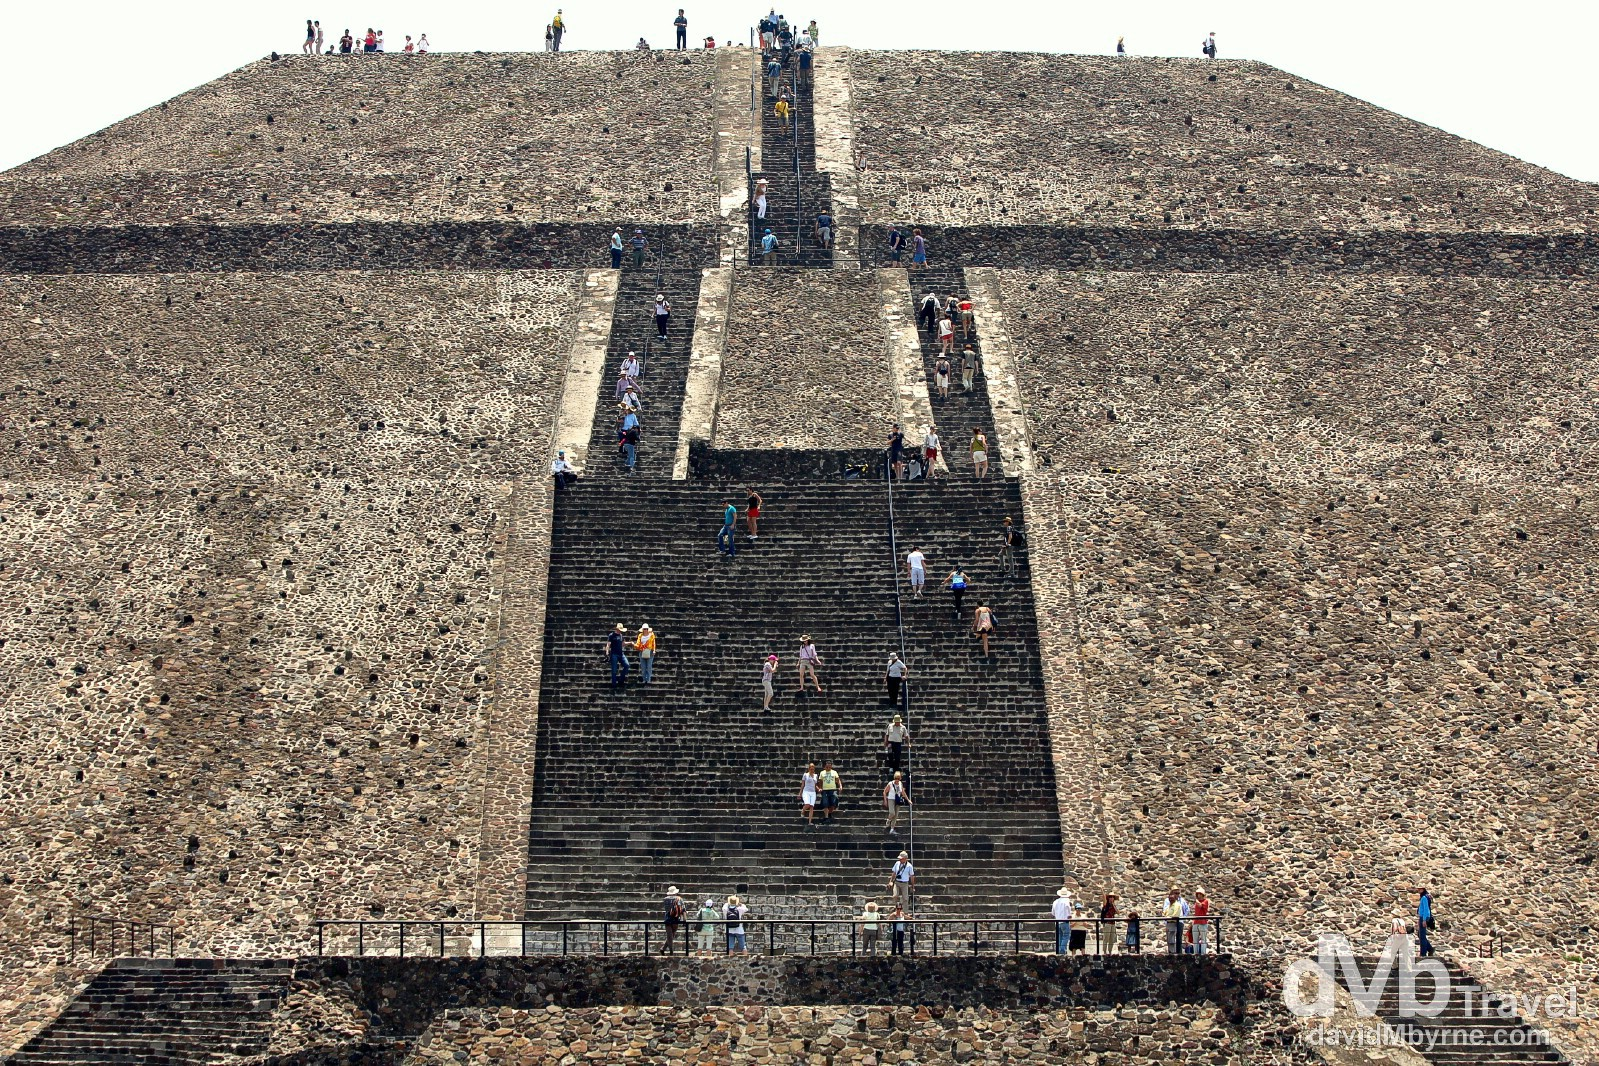 Scaling the Piramide del Sol (Pyramid of the Sun), the third largest pyramid in the world. Teotihuacan, Mexico. April 29th 2013.